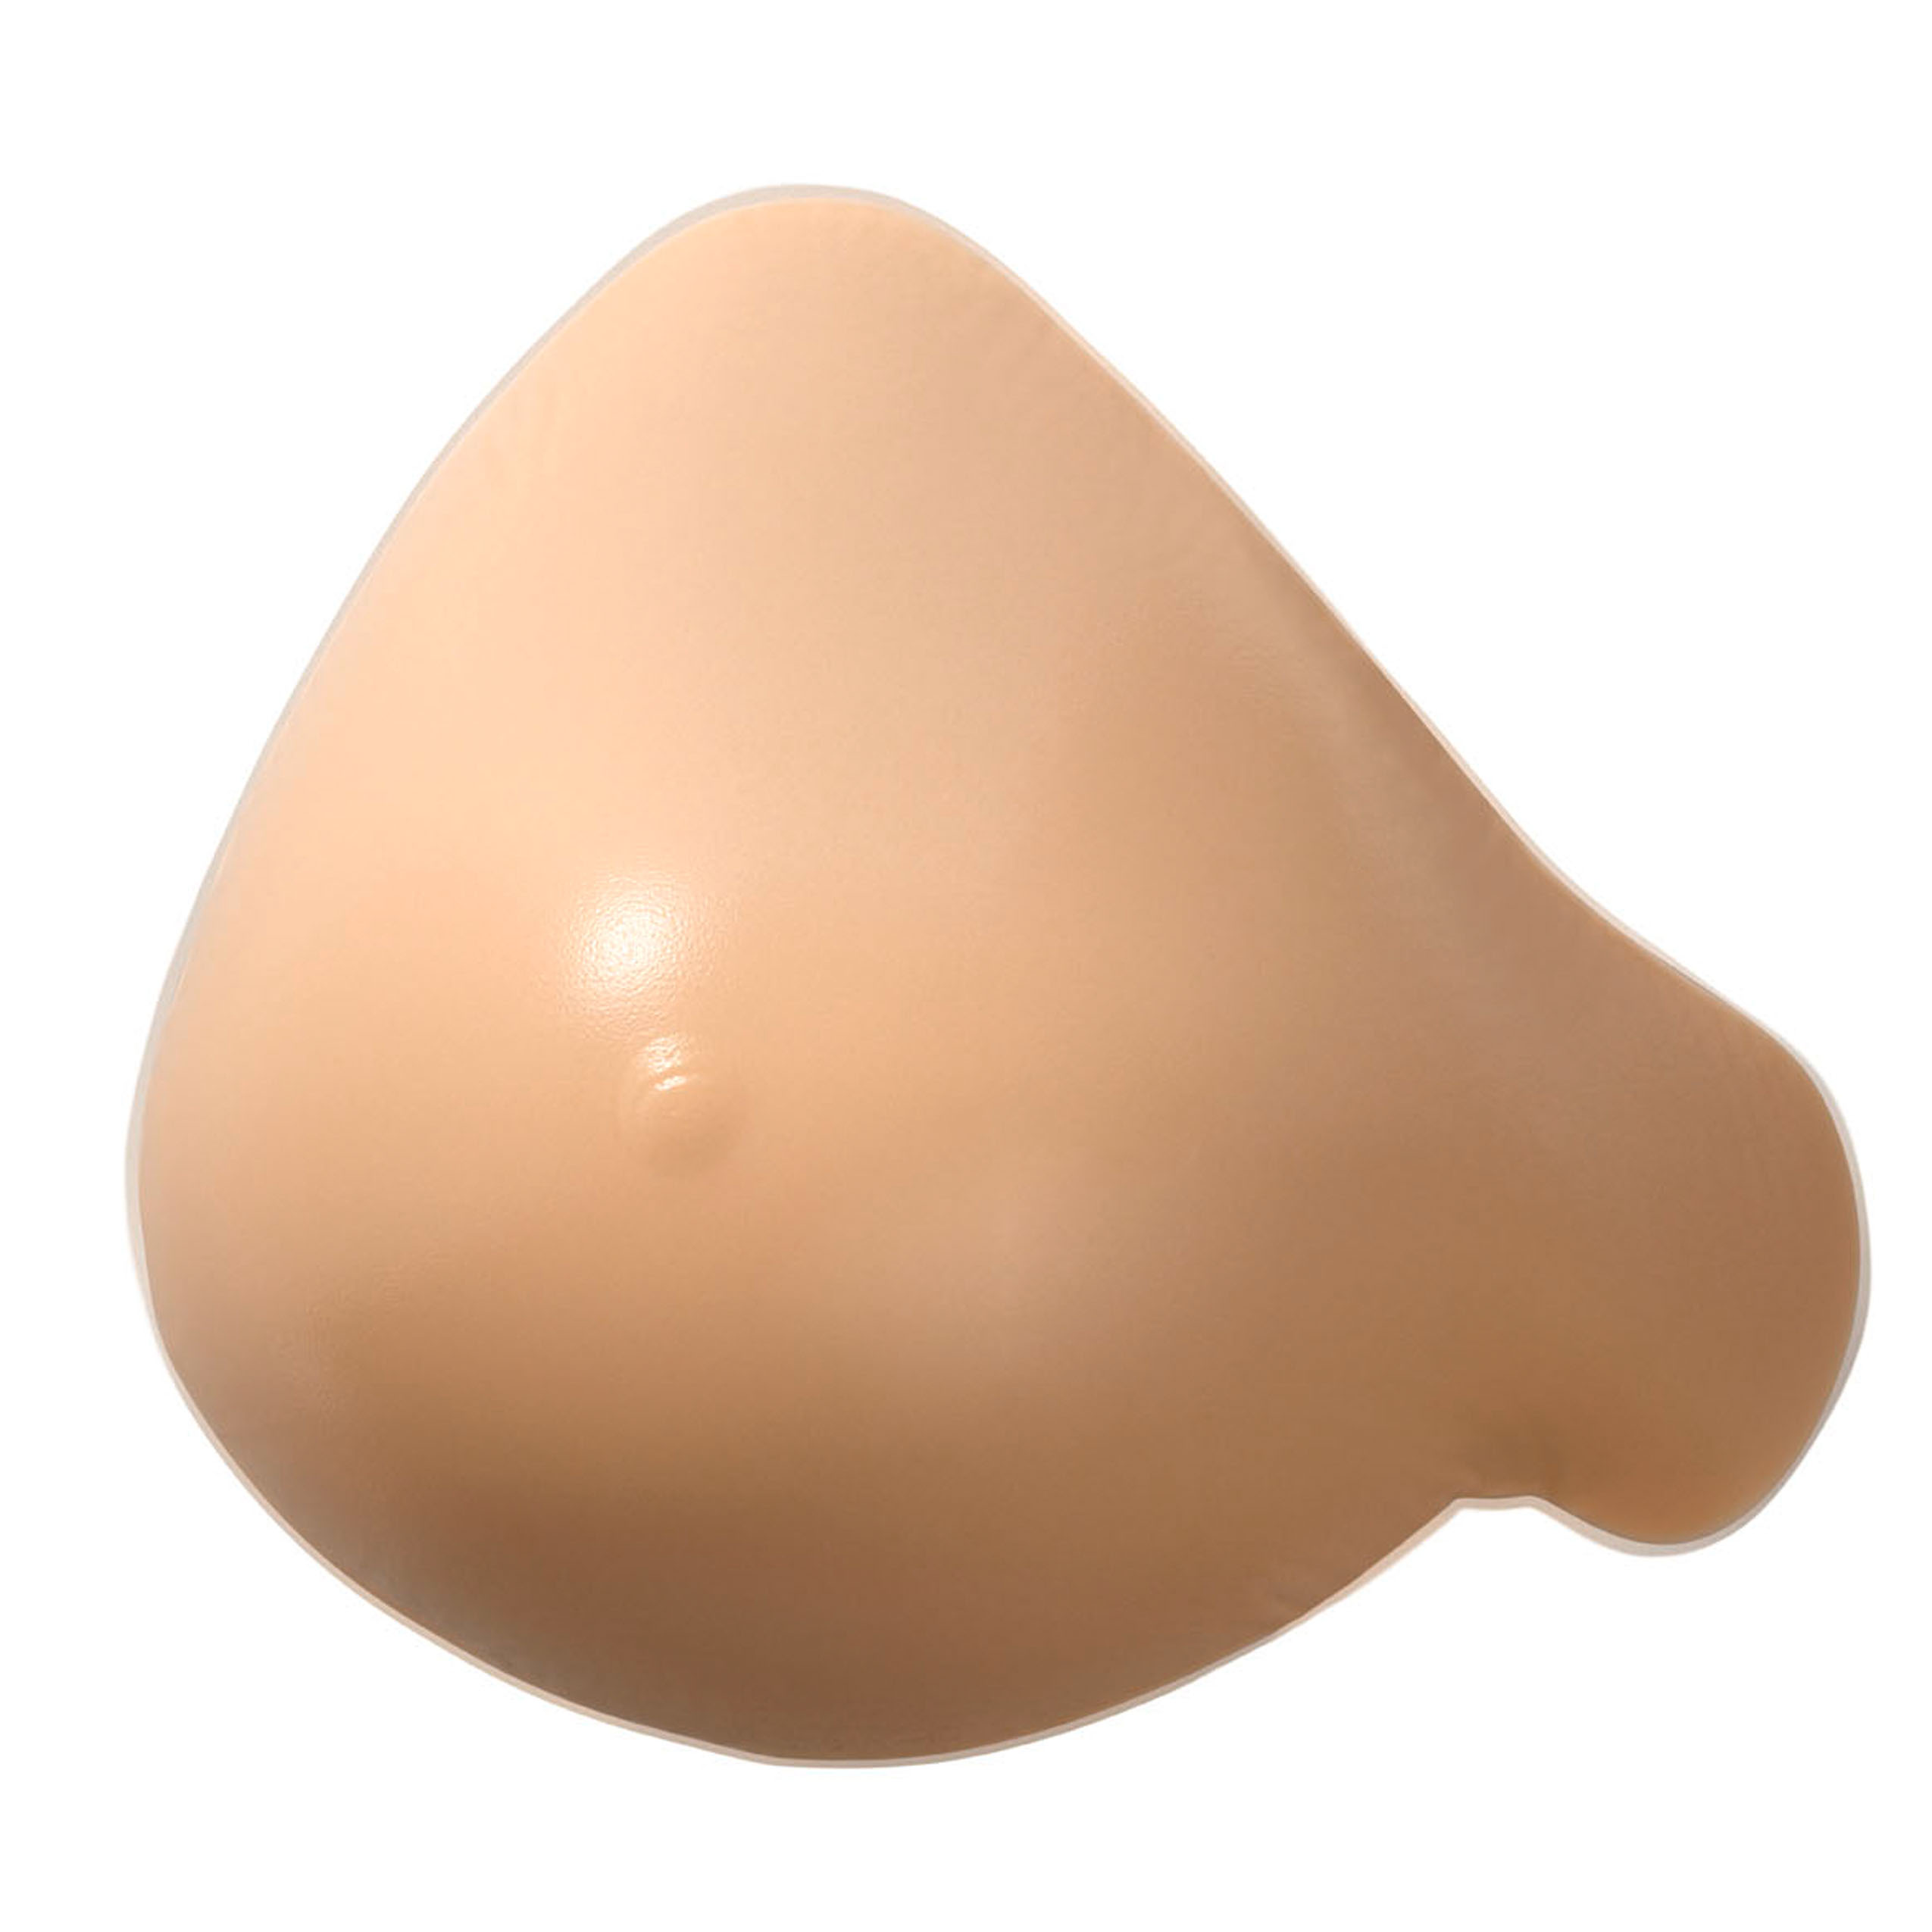 American Breast Care Lightweight Pocket-Loc Breast Form